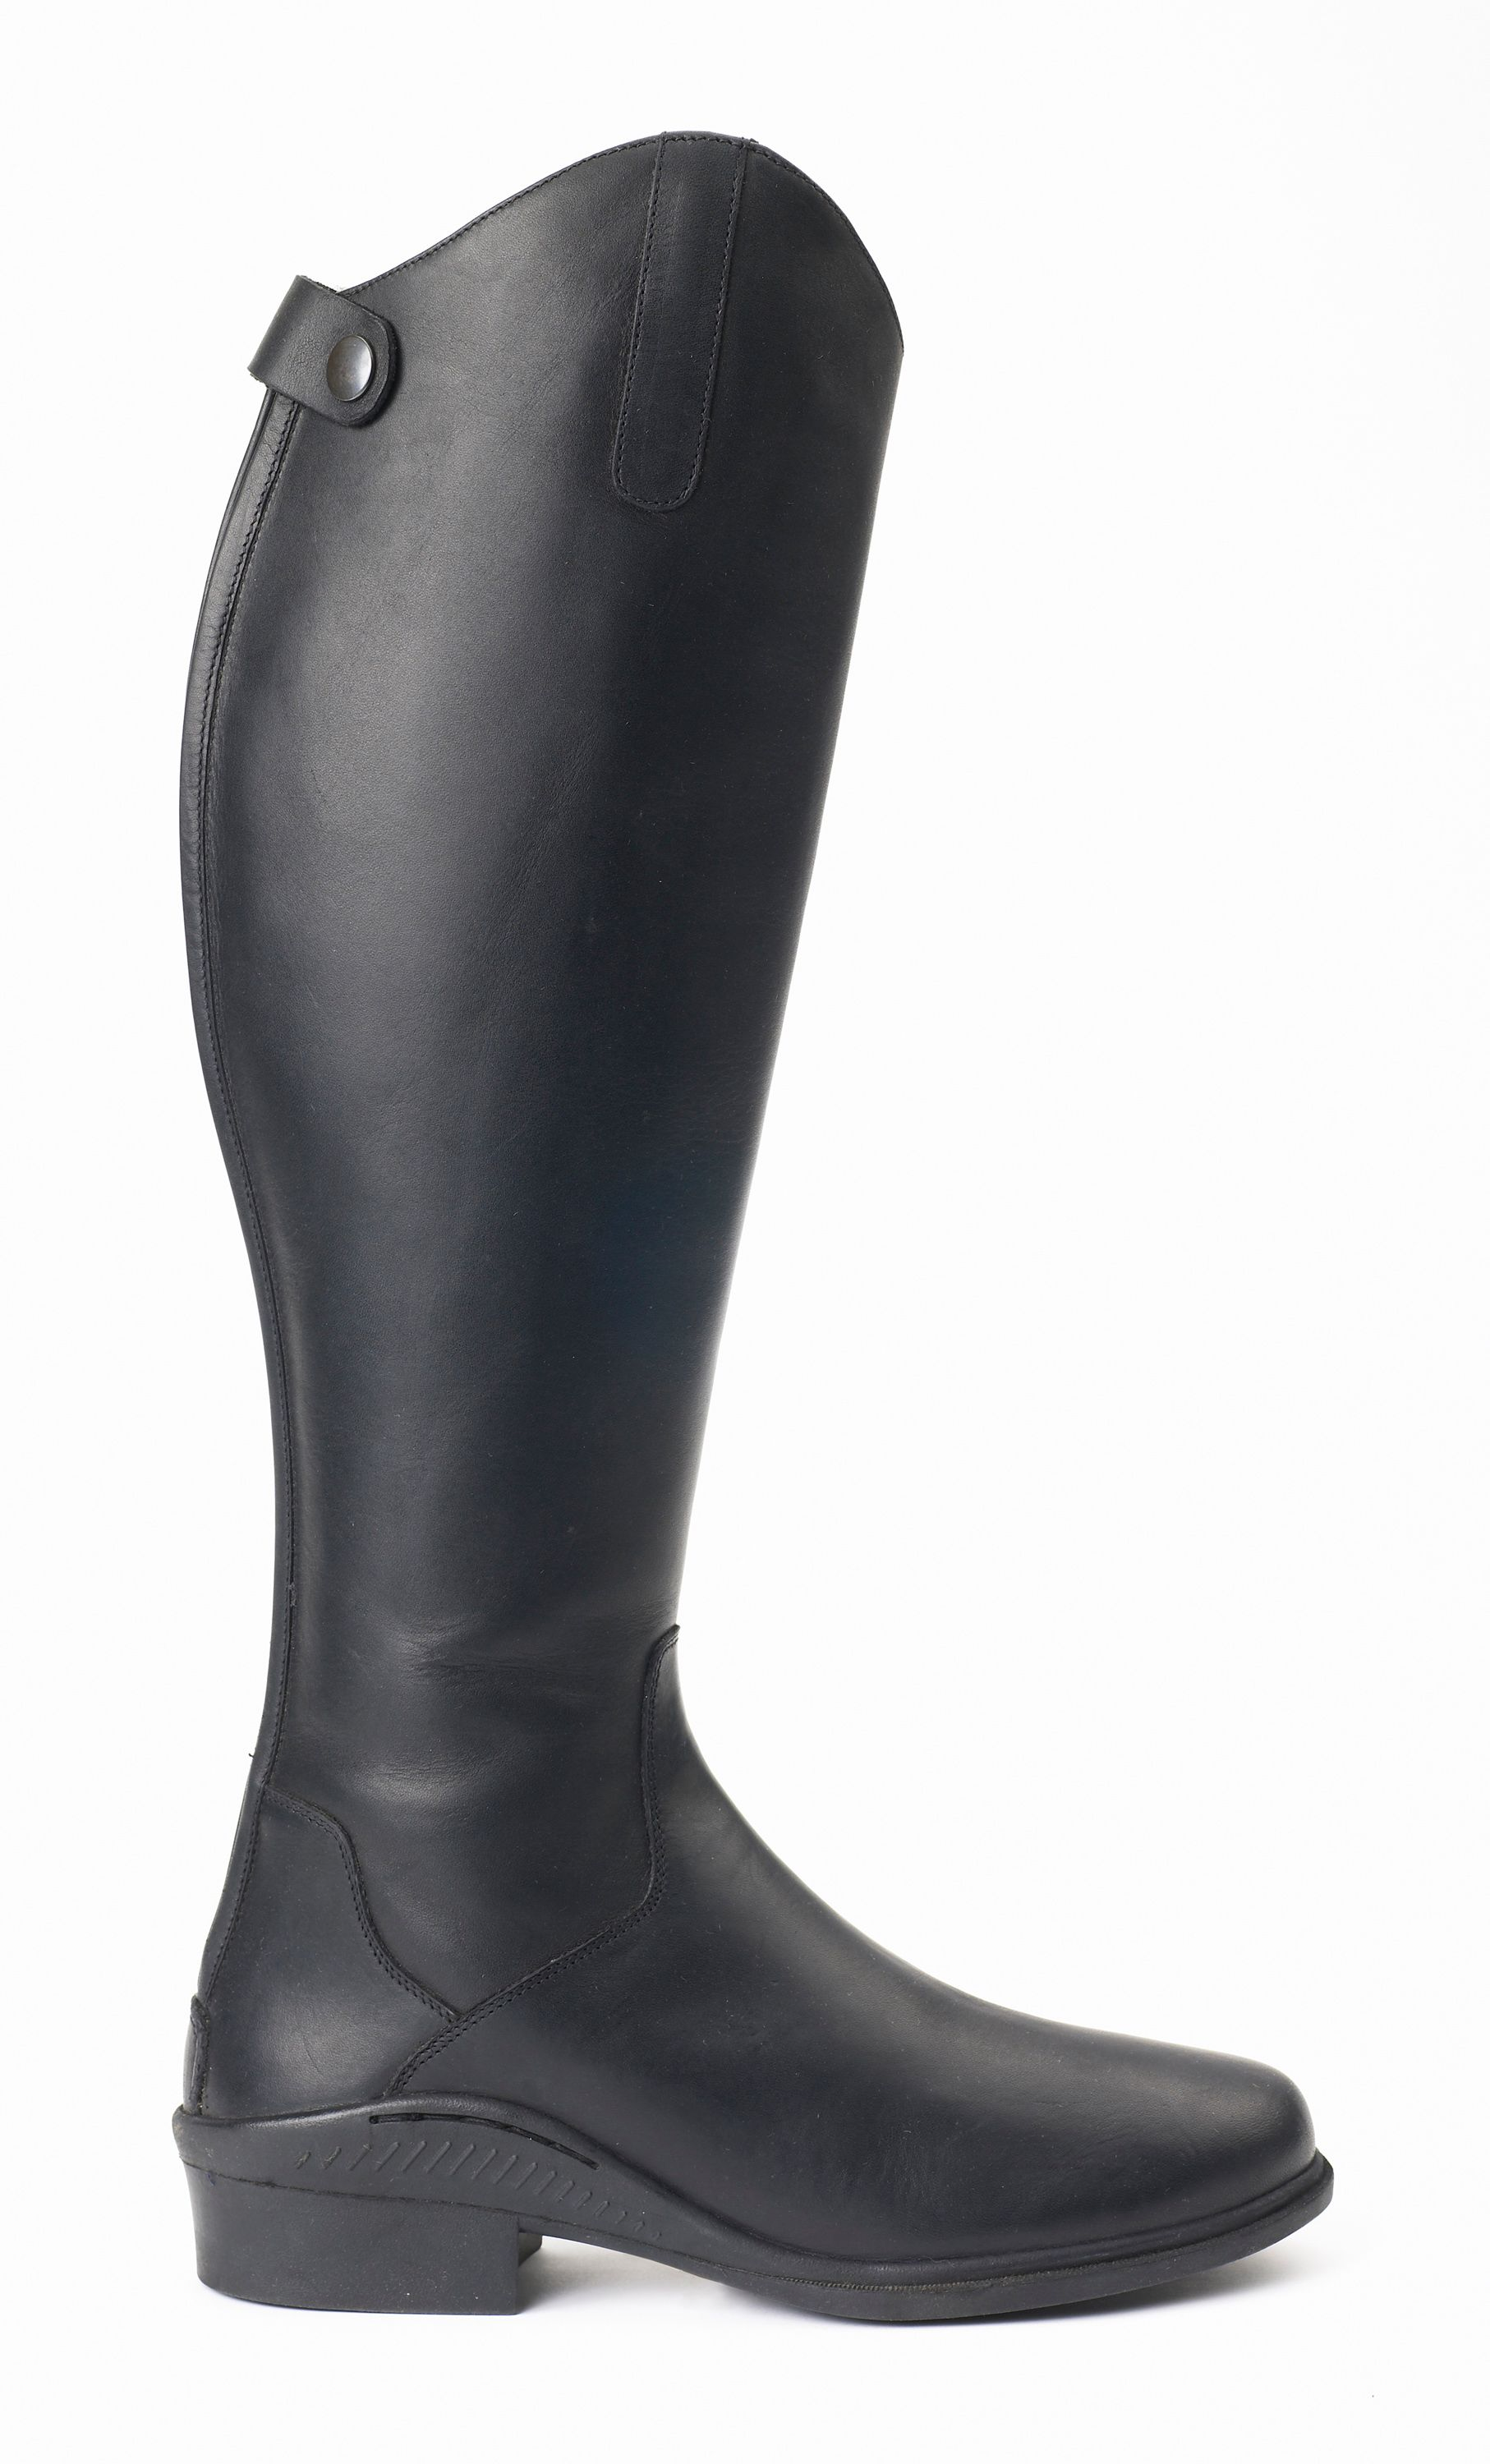 Ovation Aeros Ladies Elite Tall Boot